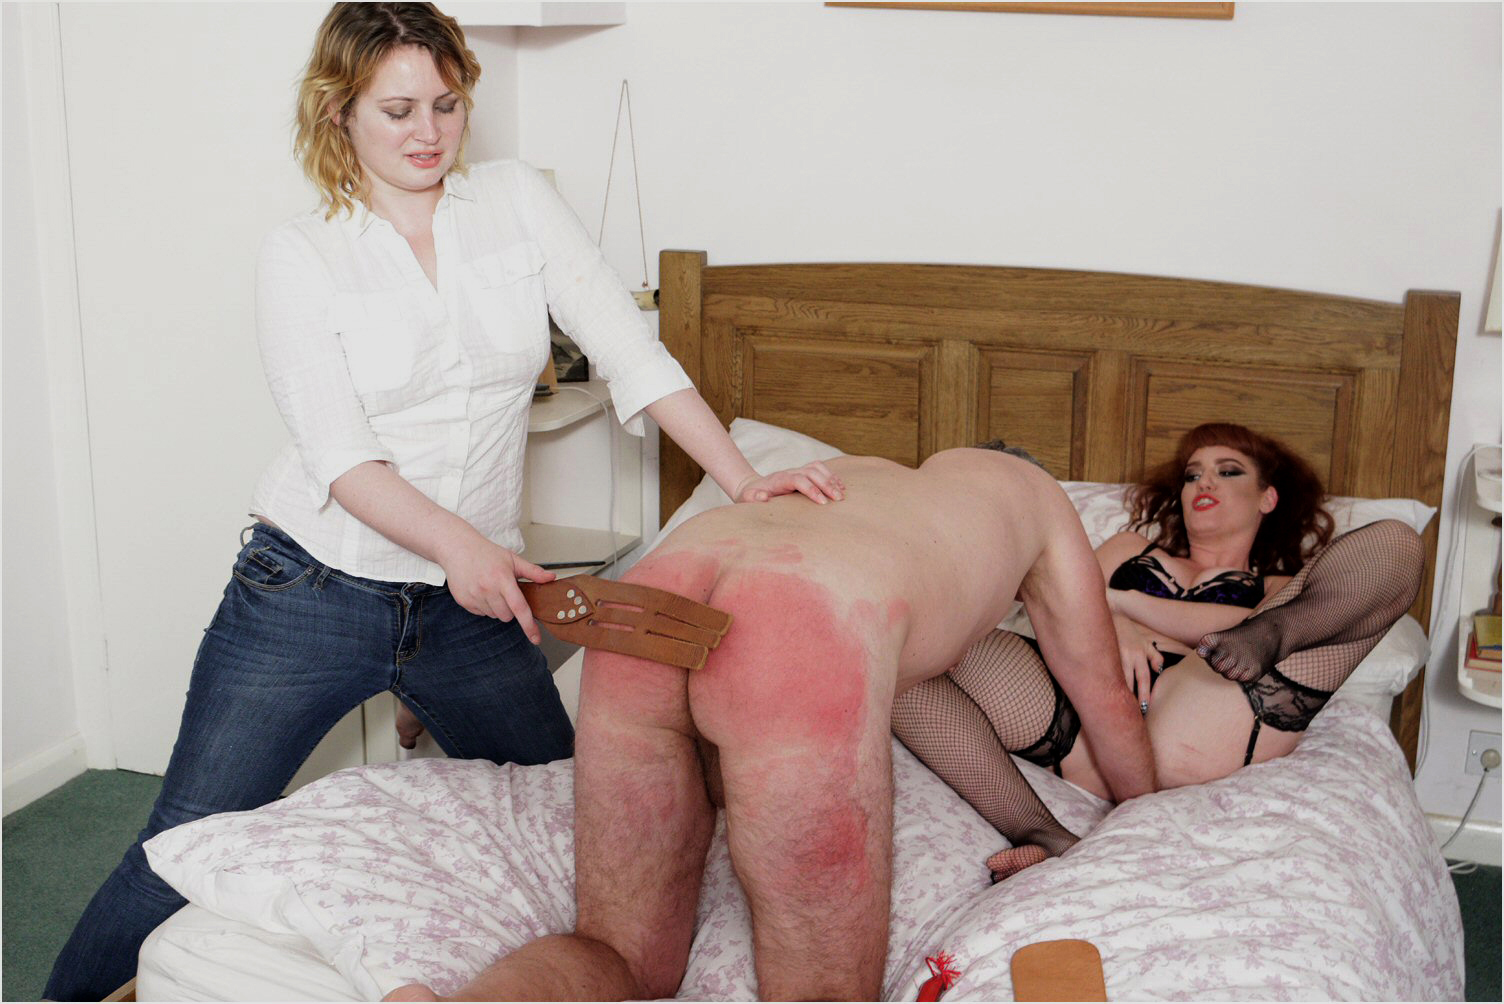 Men spanked by women